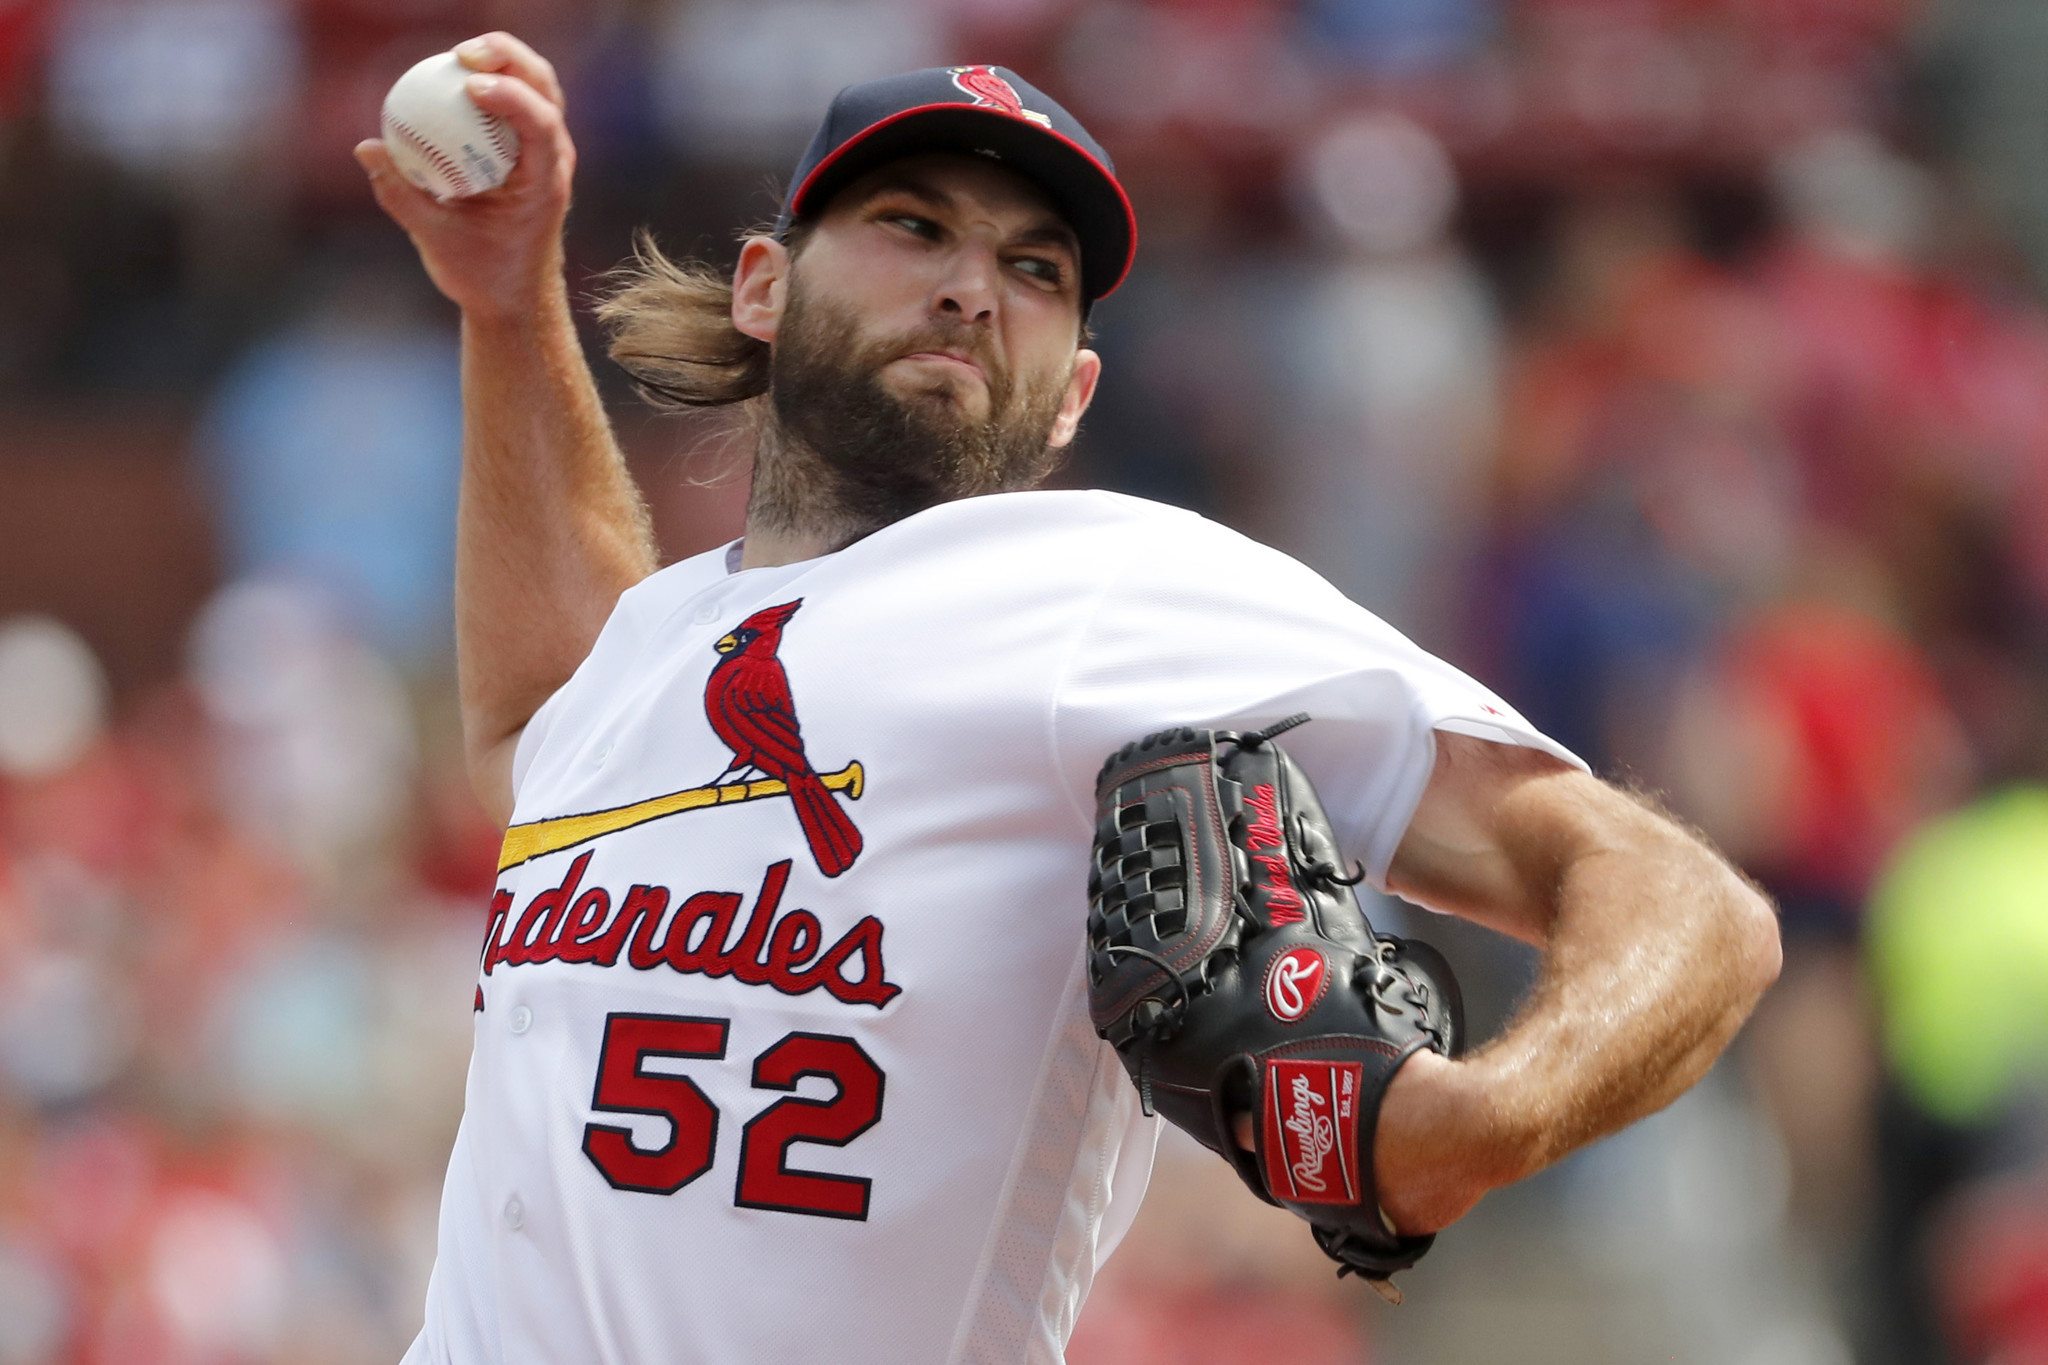 Michael Wacha signed with the Mets to remain a starter, has not considered pitching from bullpen